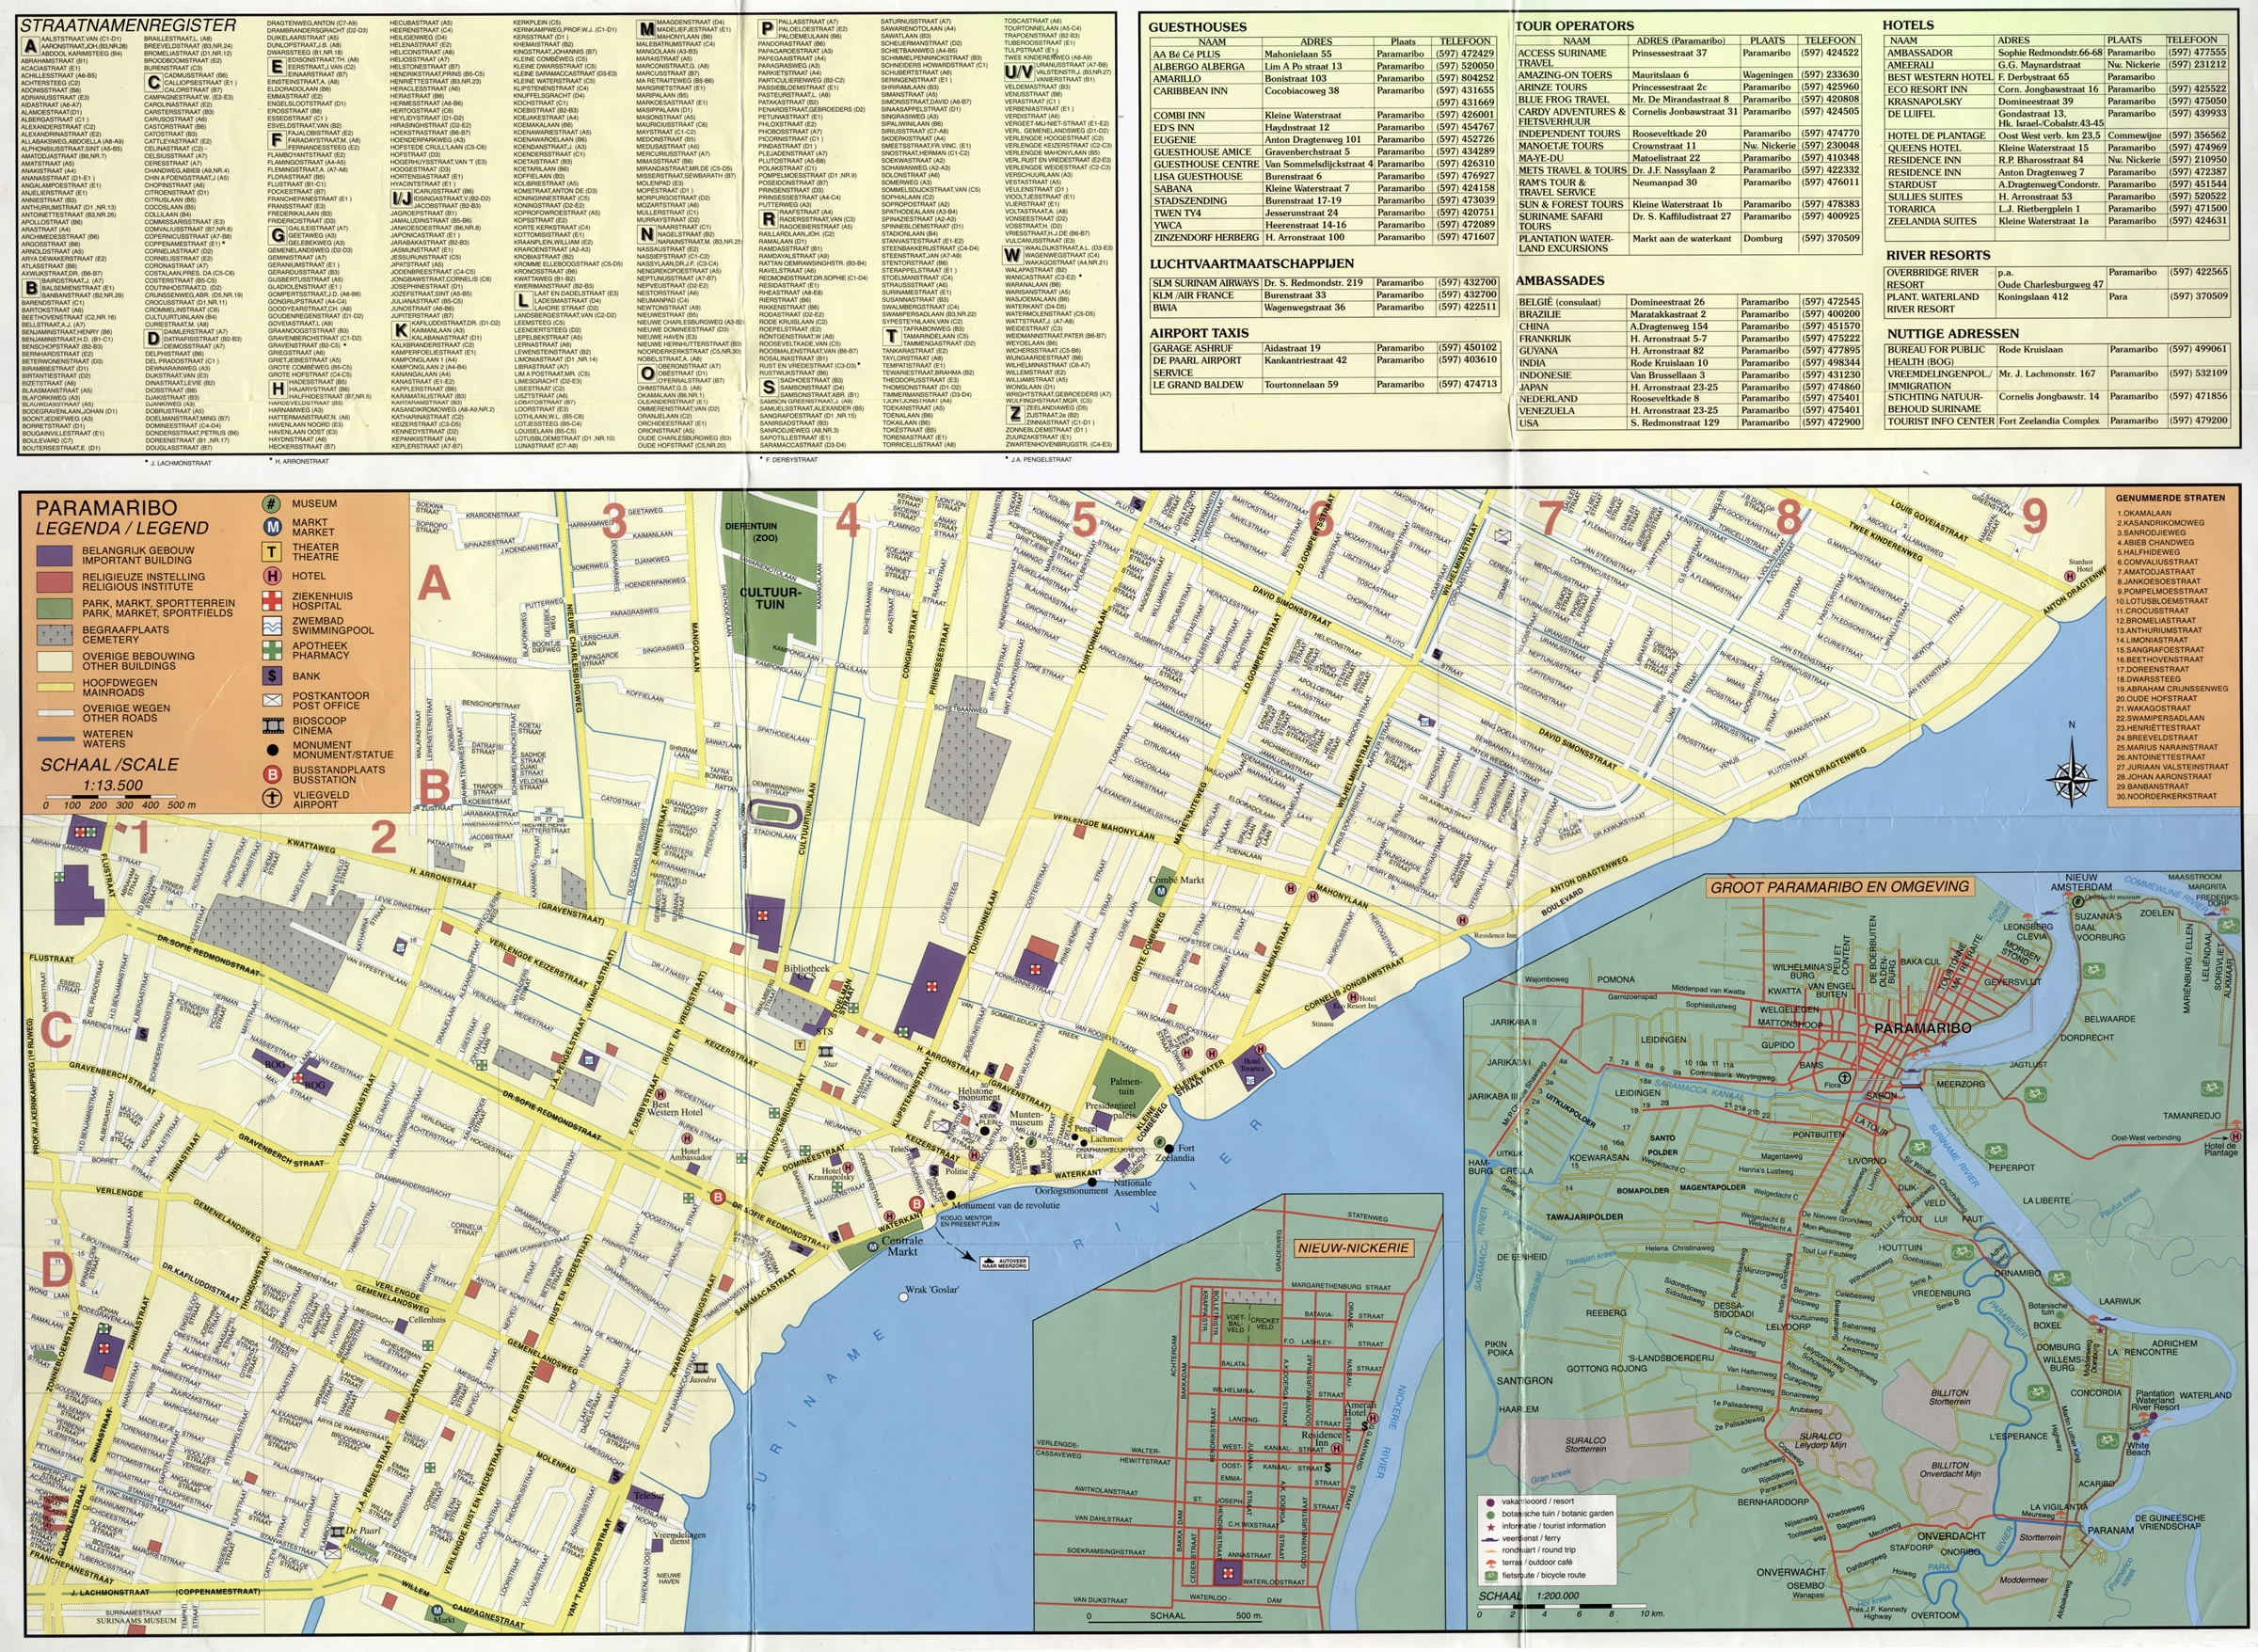 Large Paramaribo Maps For Free Download And Print High - paramaribo map